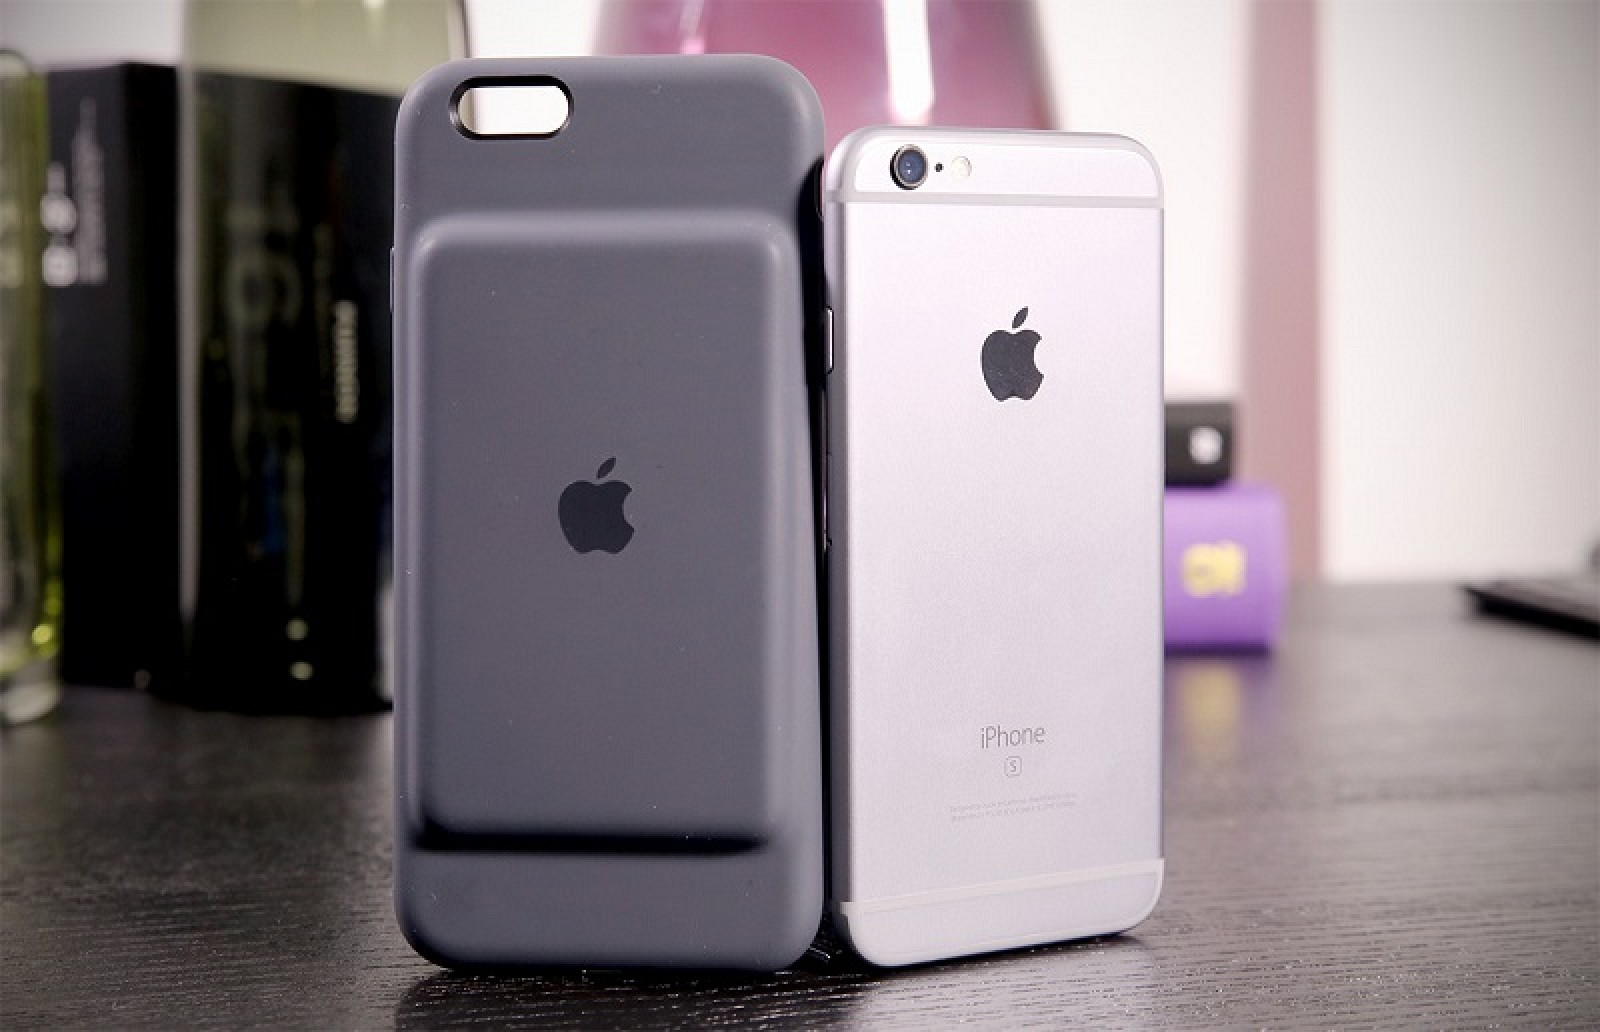 Iphone 8 Charging Case >> Apple's iPhone 6s Battery Case: iOS Integration Is Nice, but Better Options Exist - Mac Rumors